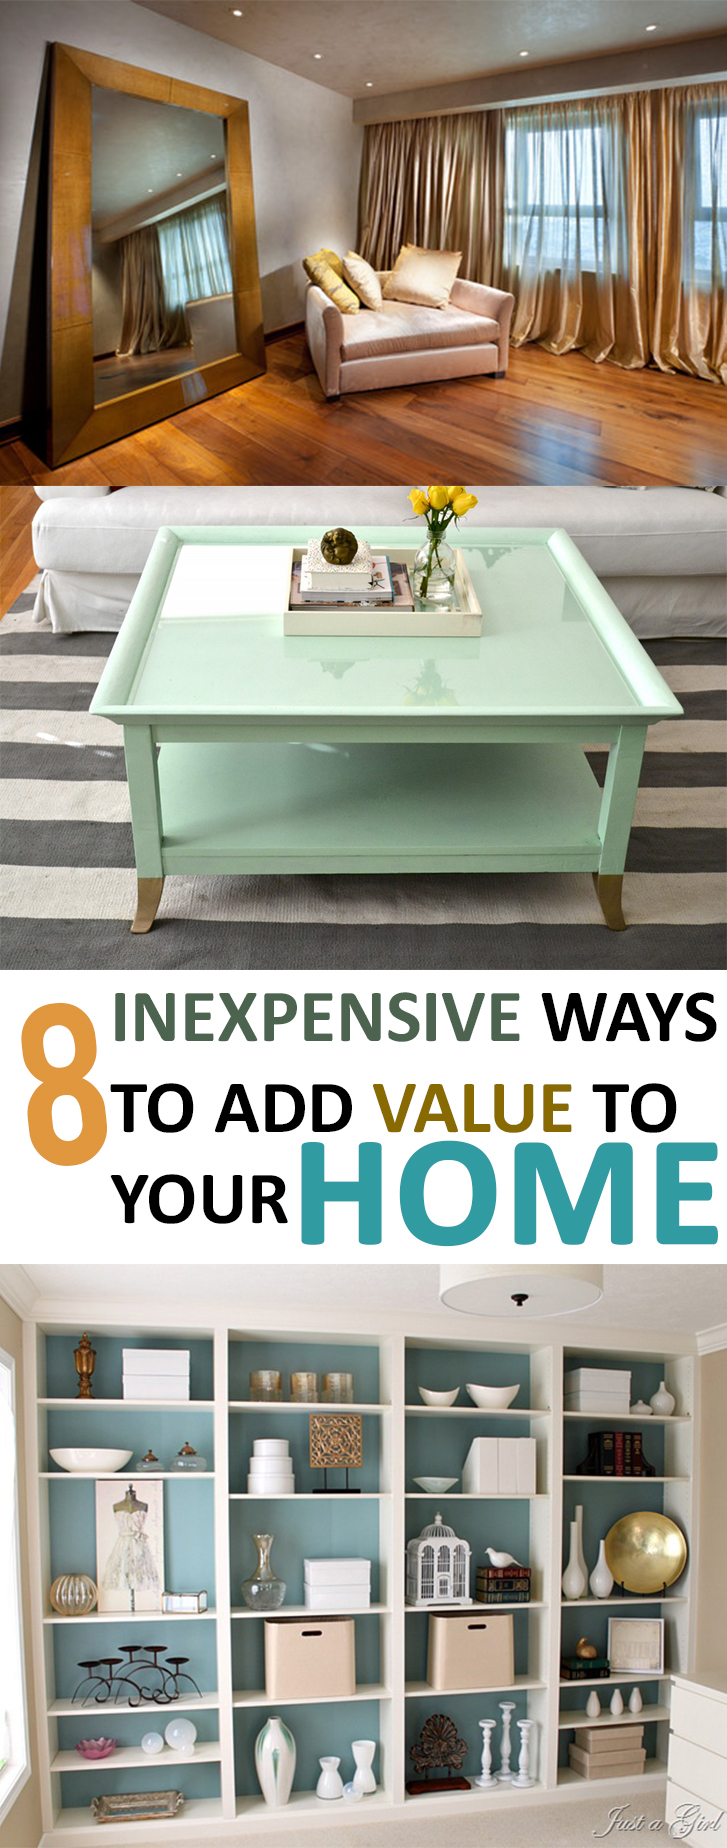 8 Inexpensive Ways to Add Value to Your Home